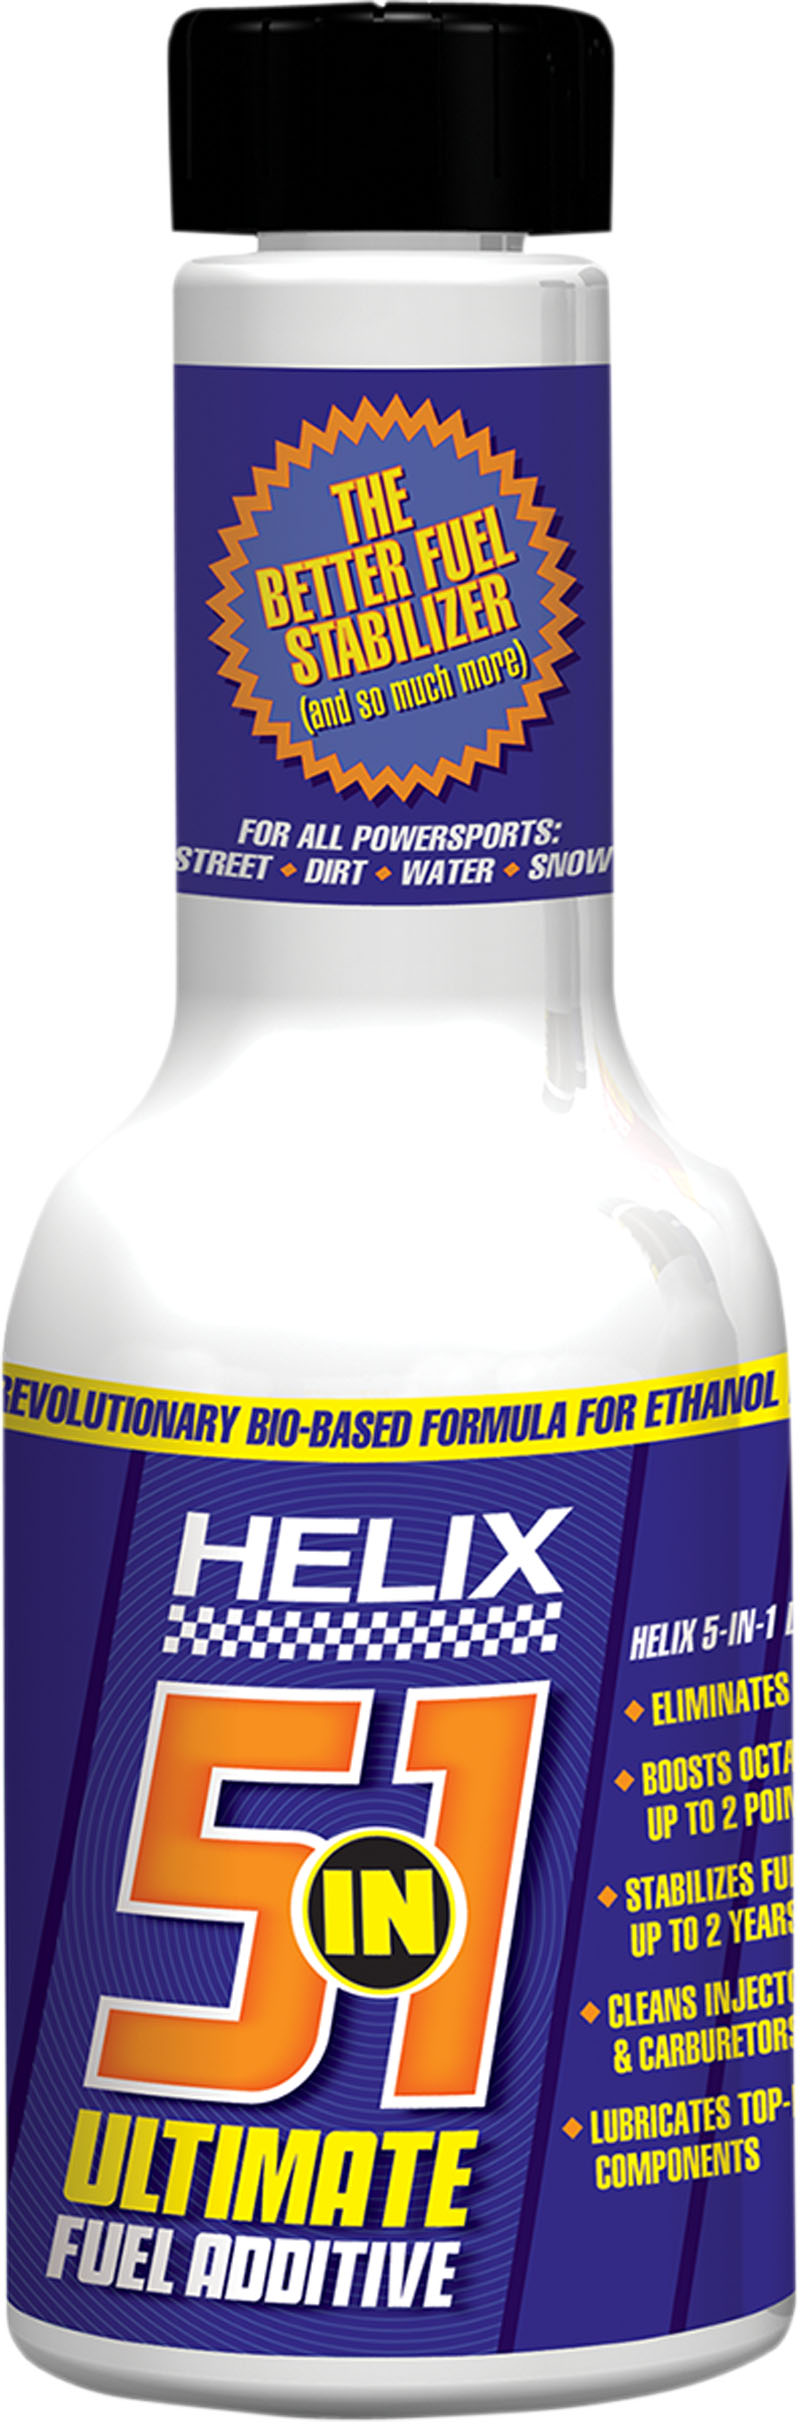 HELIX FUEL TREATMENT 5-IN-1 (#700604500837)